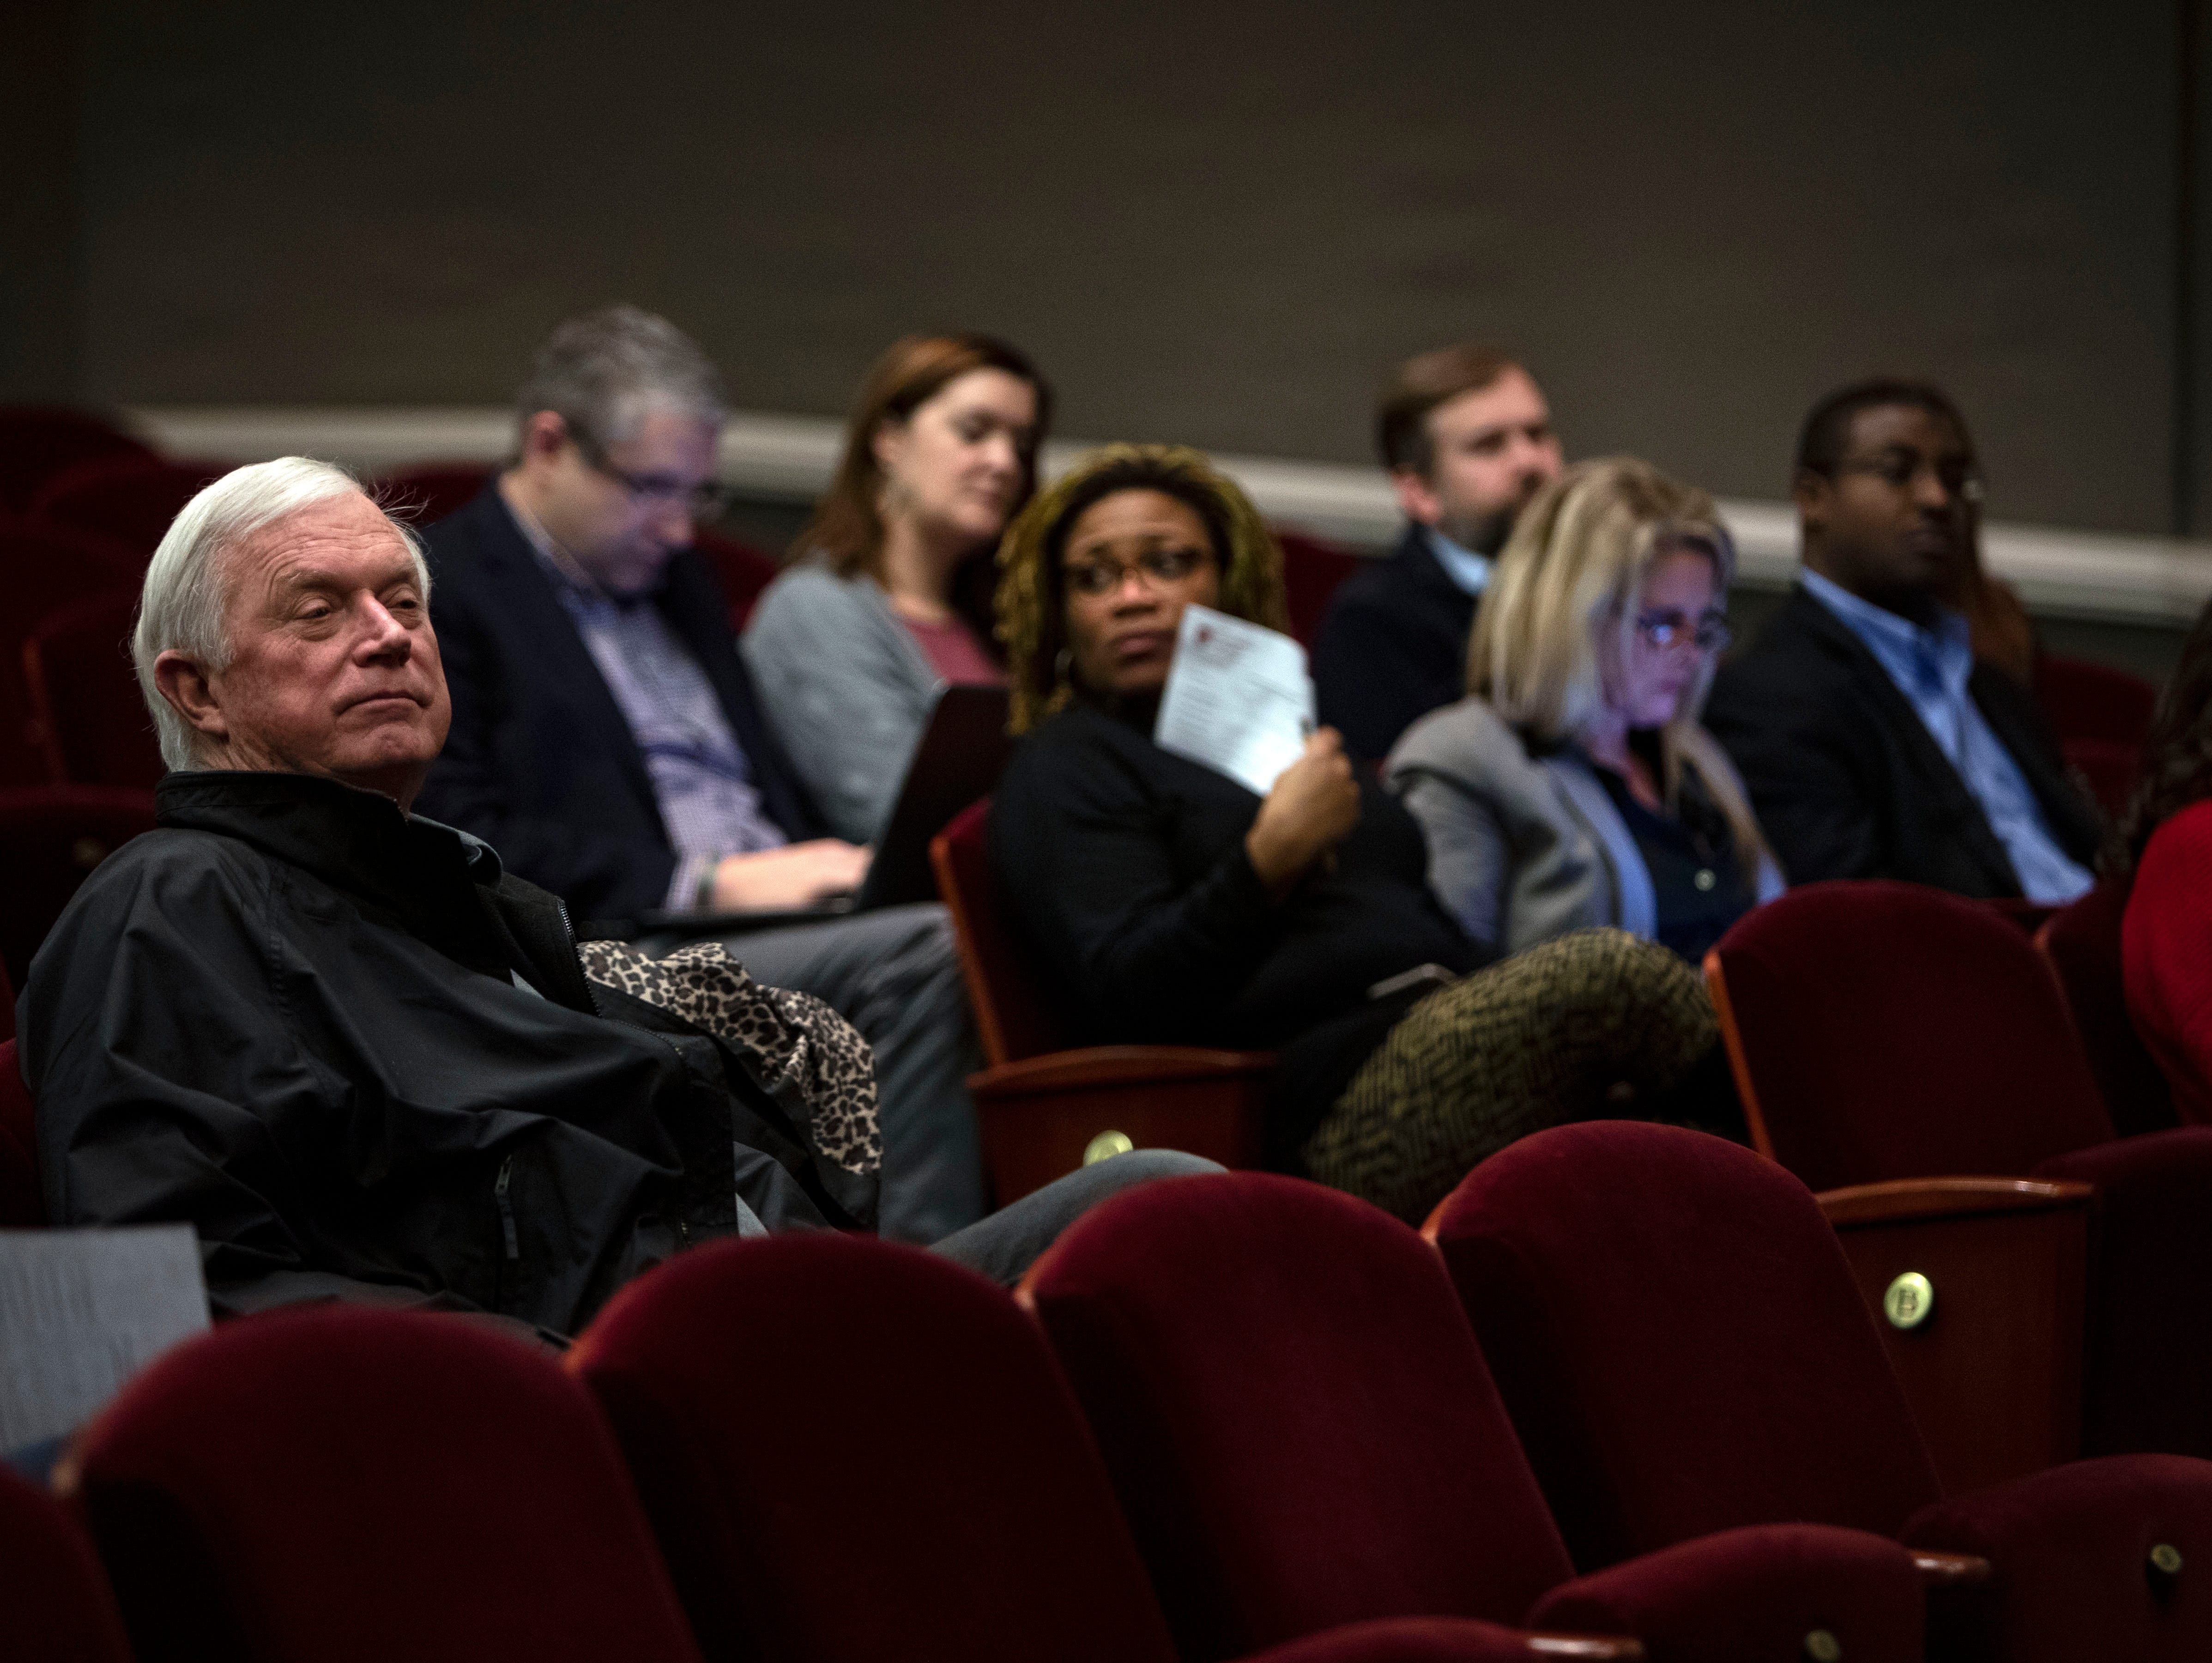 Collierville residents attend the Collierville school board meeting, Thursday, Nov. 29, 2018. The board votes to start school later.